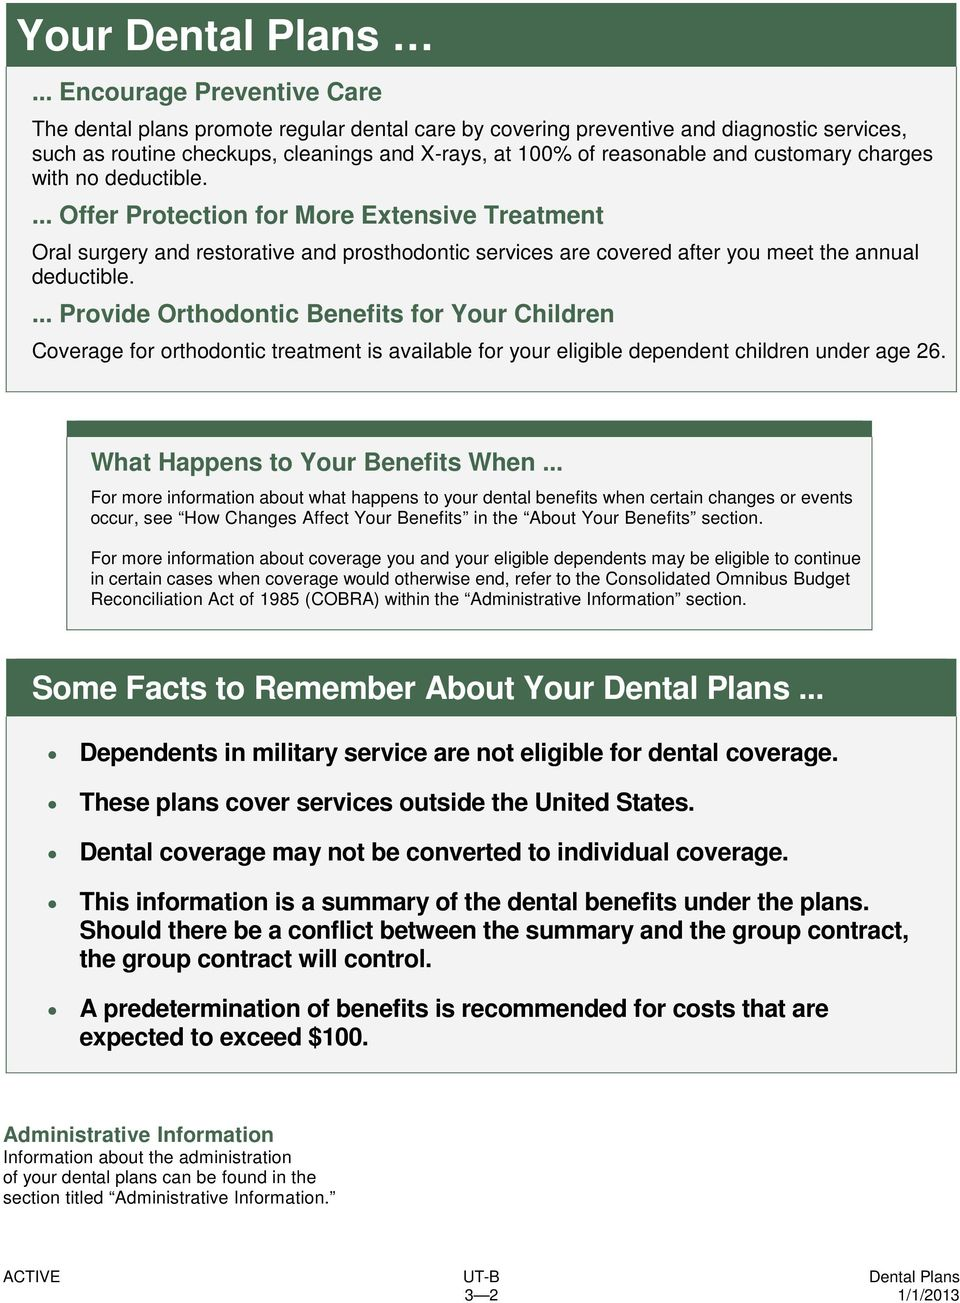 customary charges with no deductible.... Offer Protection for More Extensive Treatment Oral surgery and restorative and prosthodontic services are covered after you meet the annual deductible.